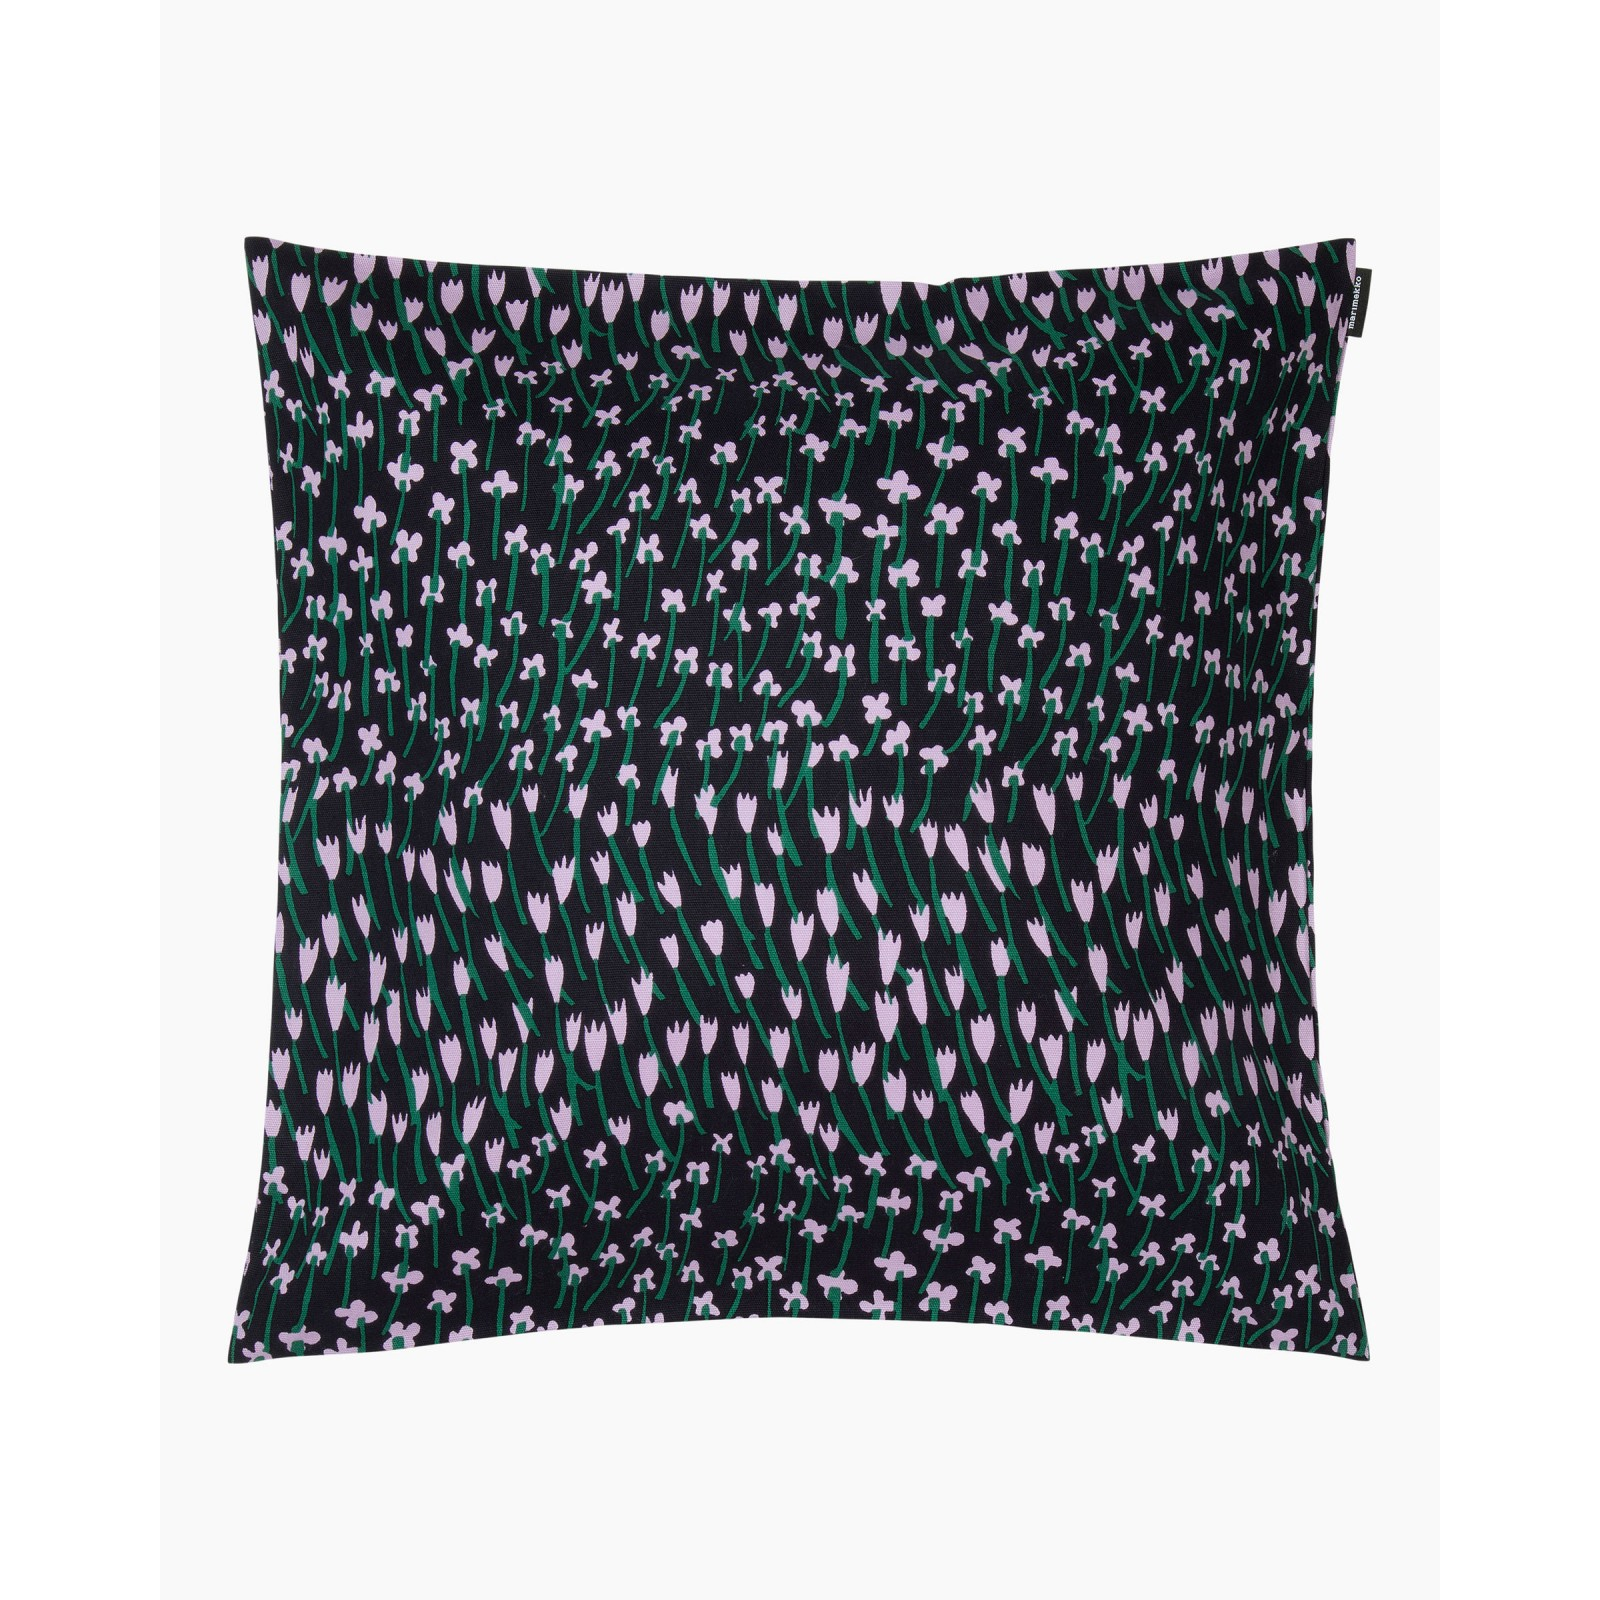 Apilainen cushion cover 45x45cm